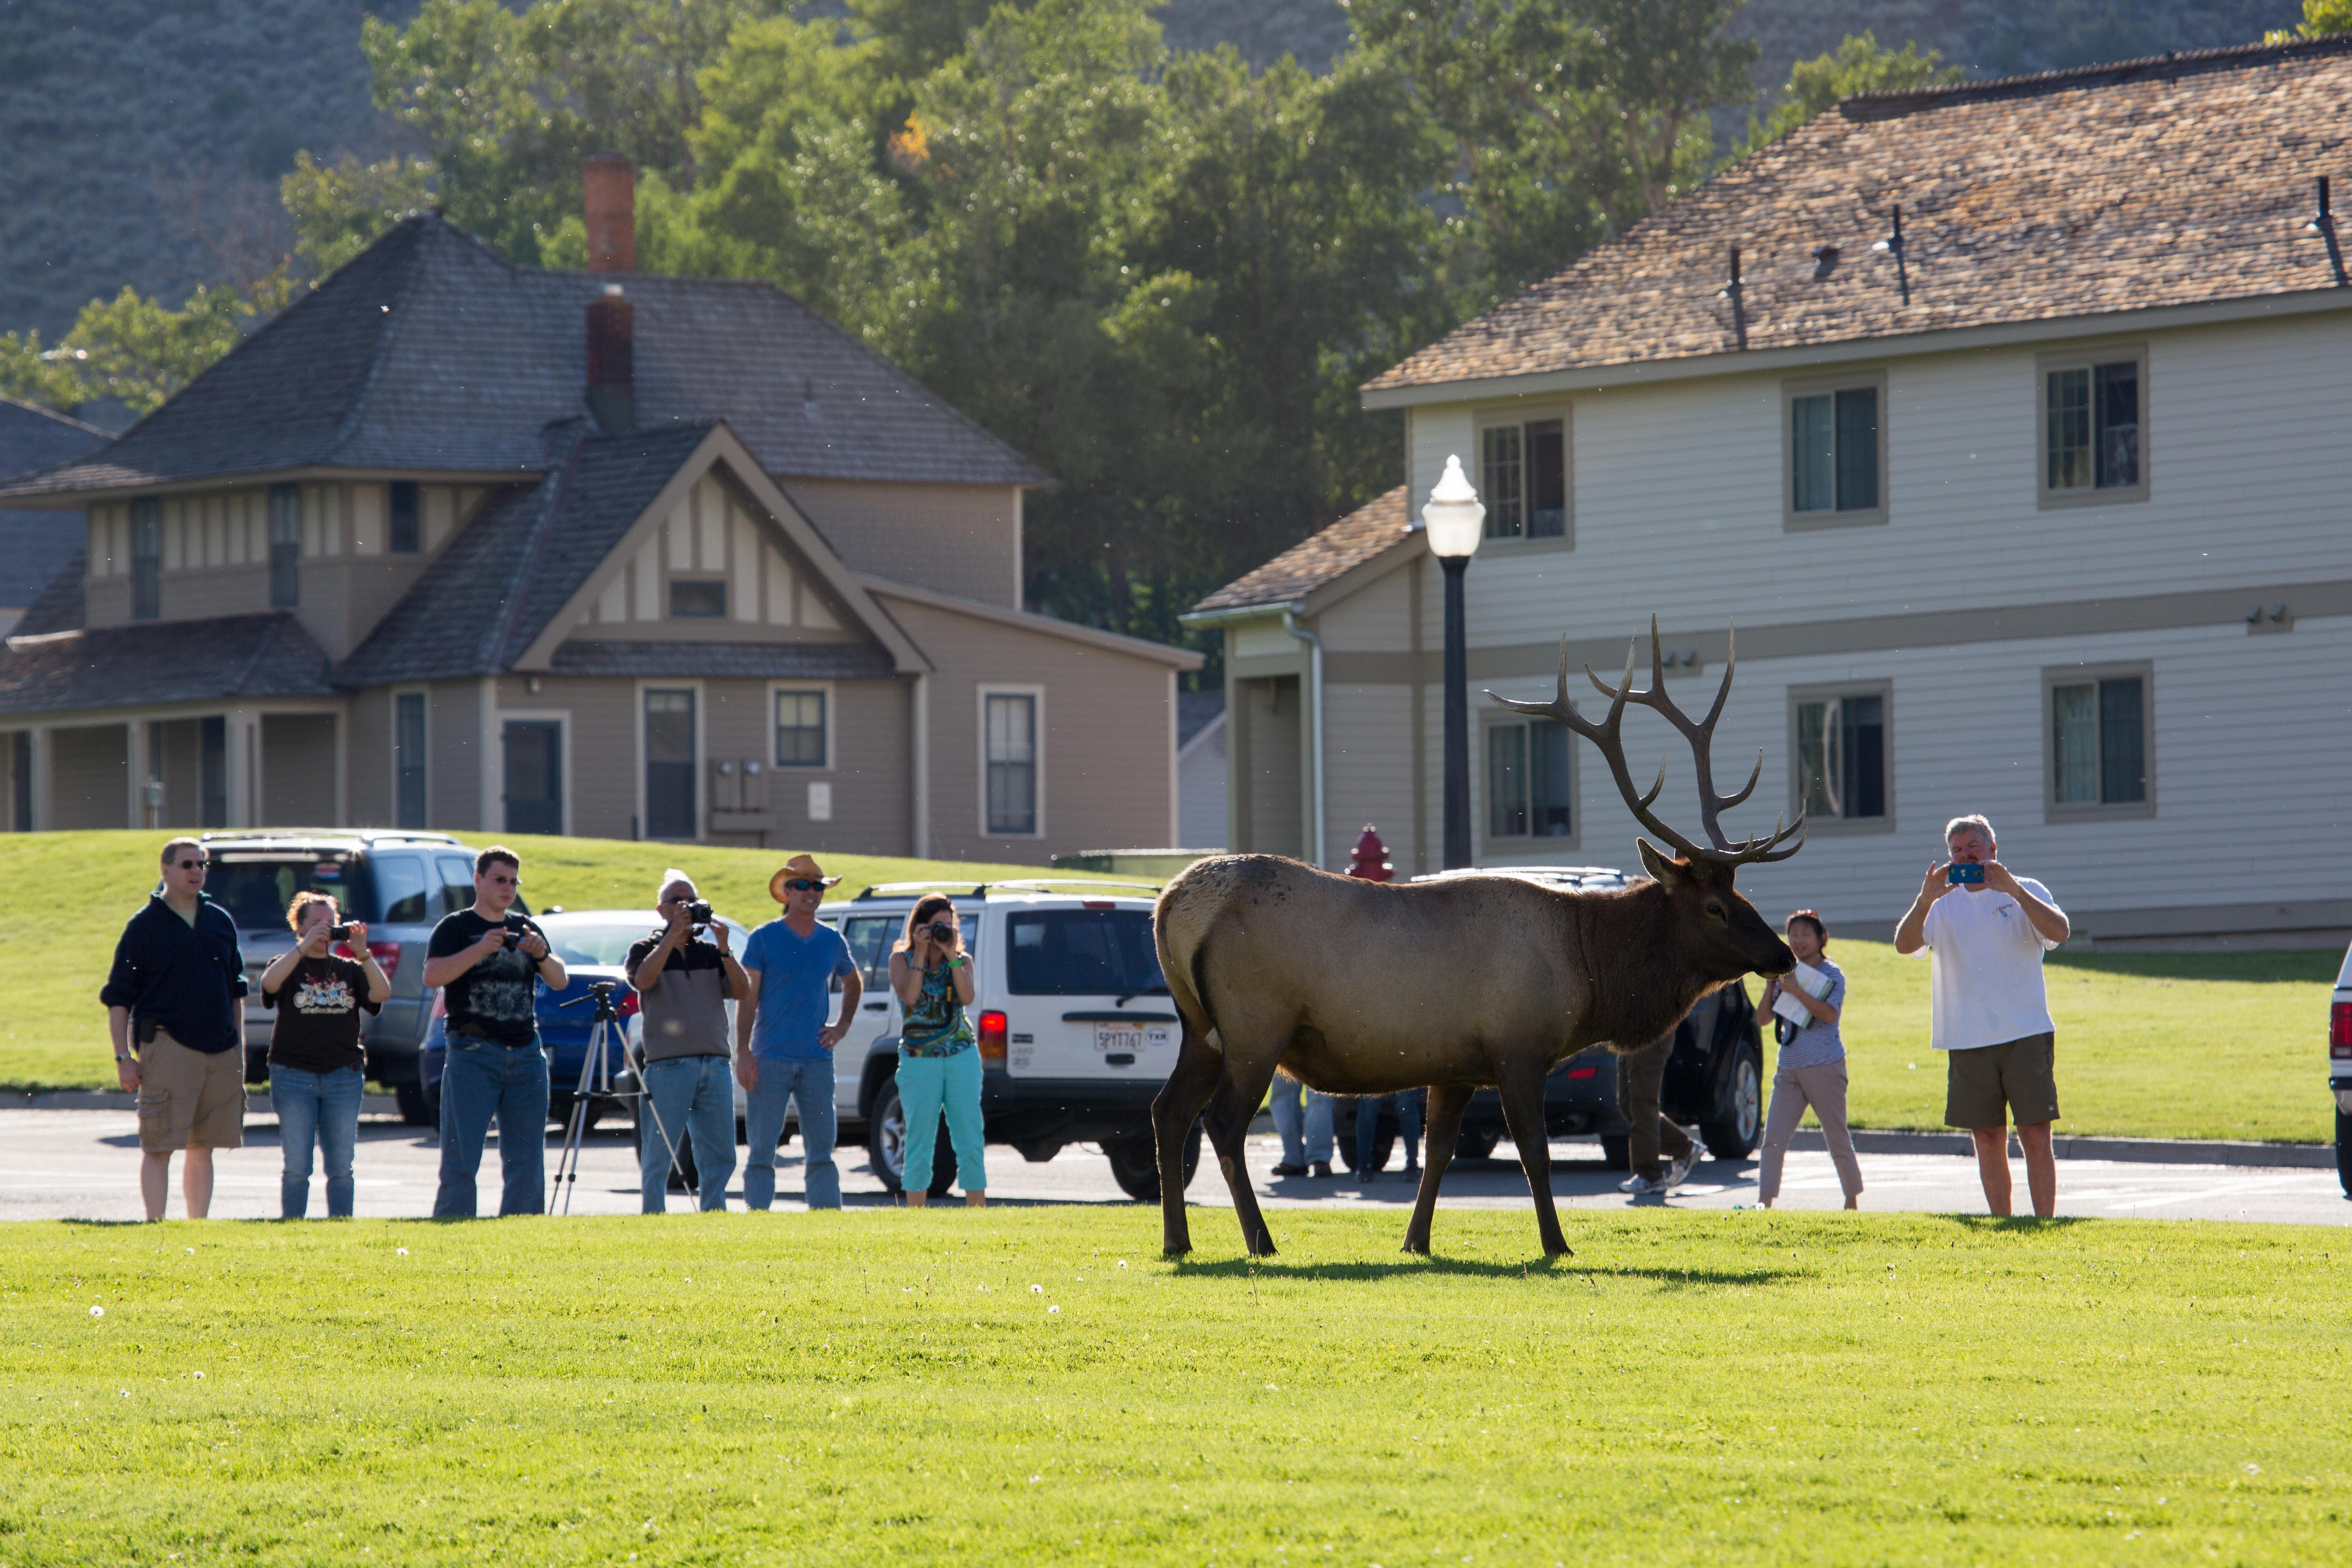 Image: Visitors encounter an elk in Yellowstone National Park.